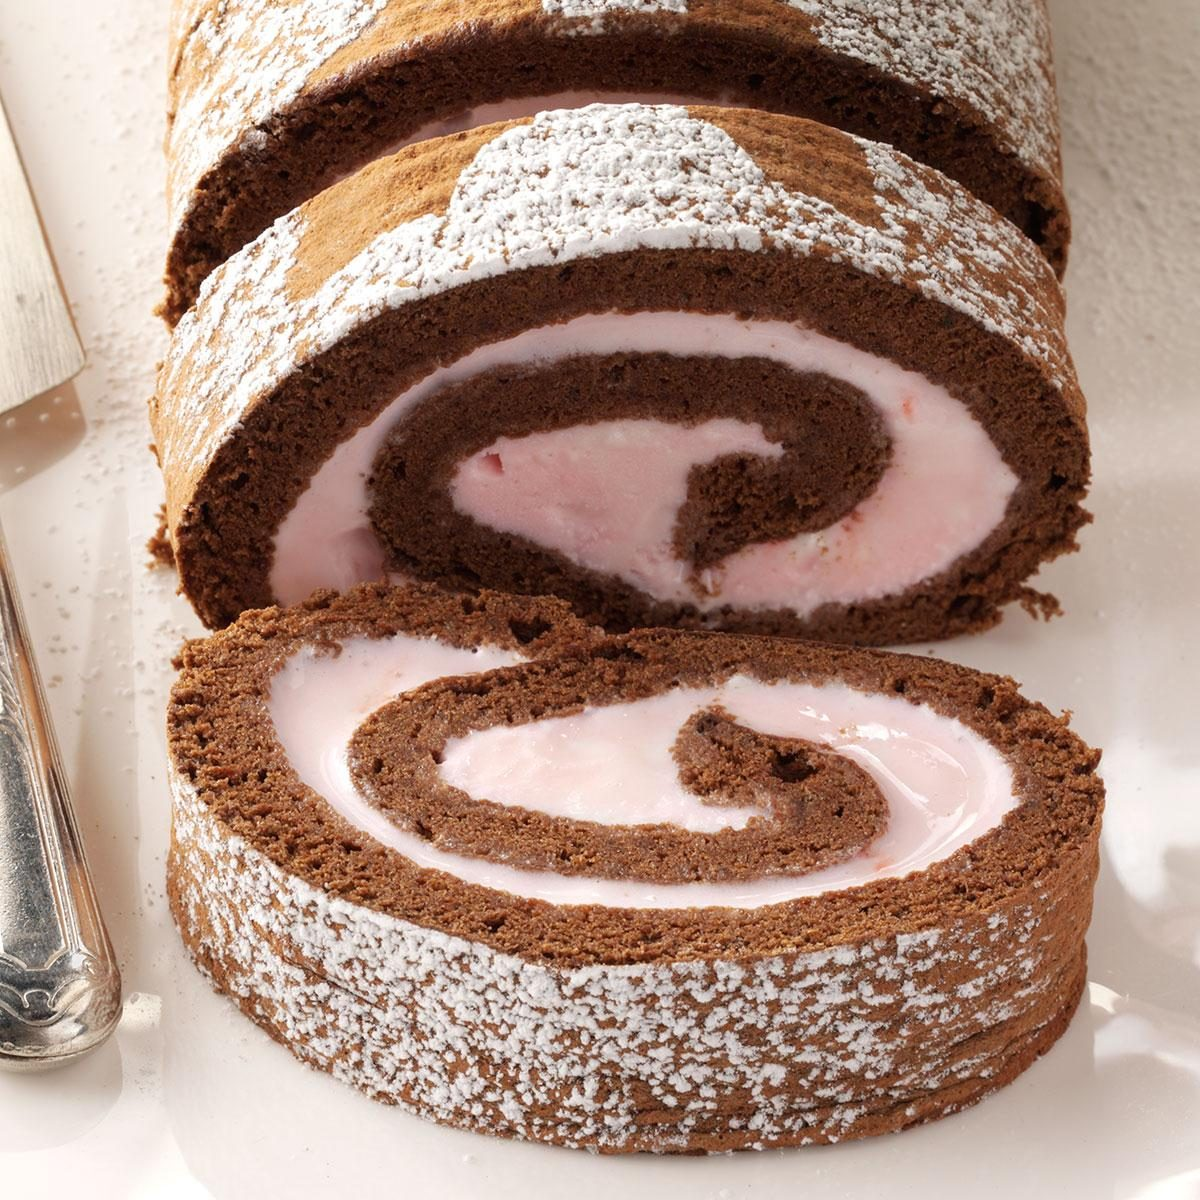 Cake Ice Cream Roll : Chocolate & Peppermint Ice Cream Roll Recipe Taste of Home